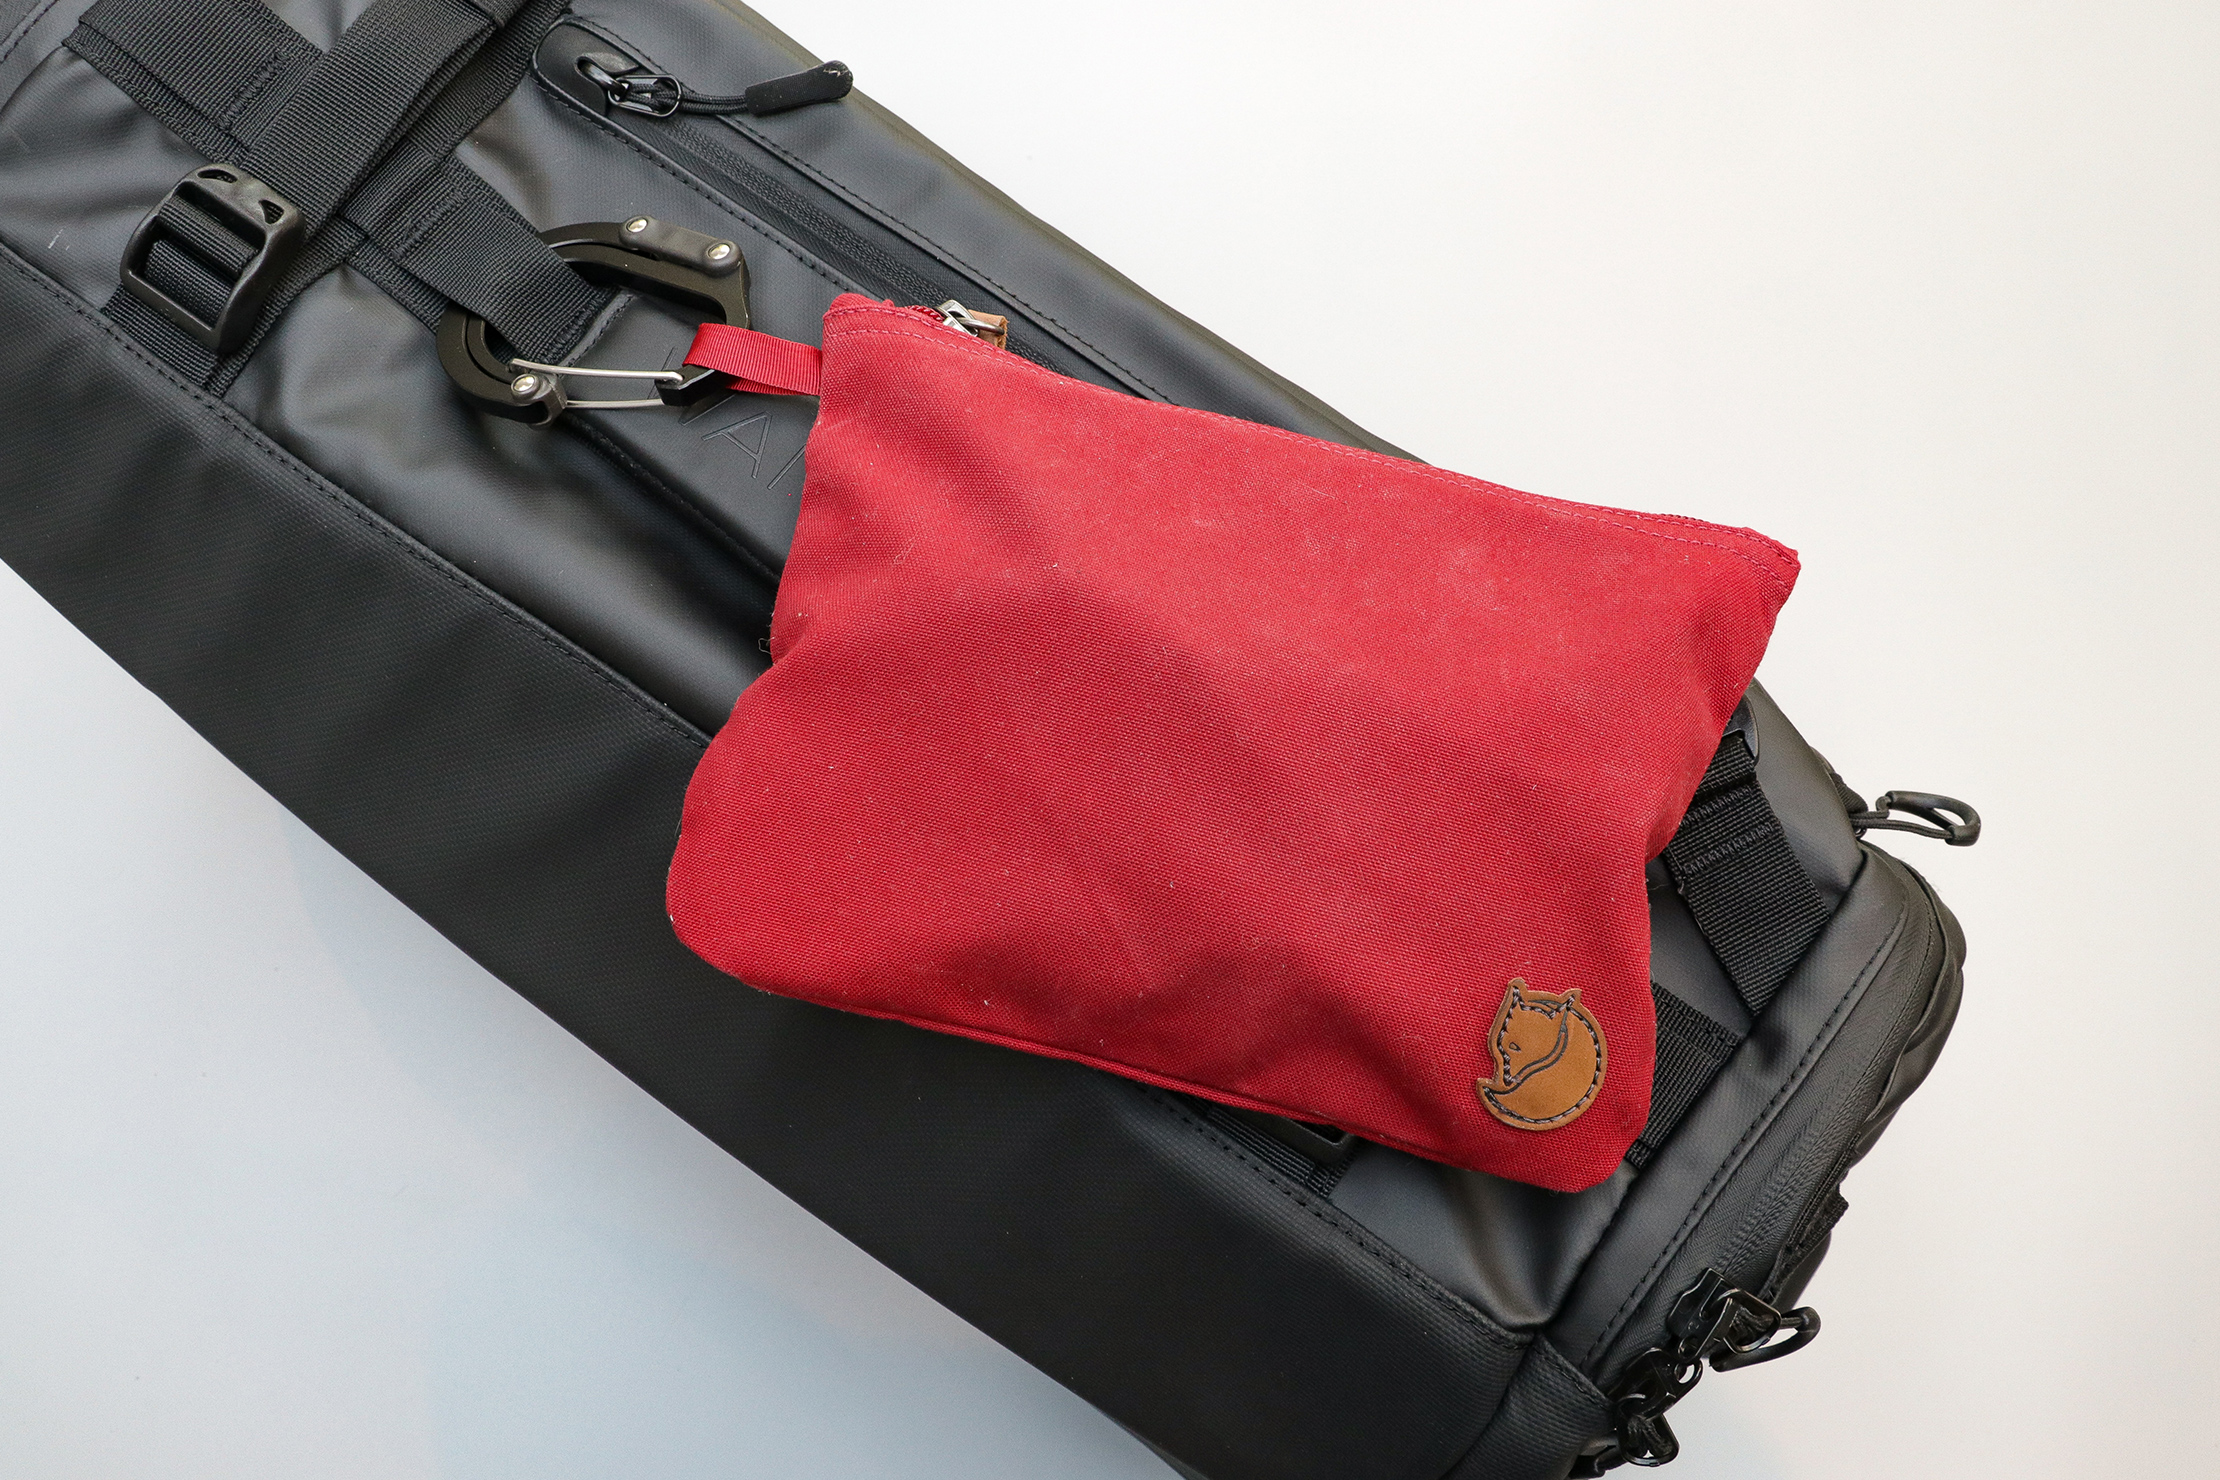 Fjallraven Gear Pocket Attached To The Wandrd Hexad Carryall Duffel With A Heroclip